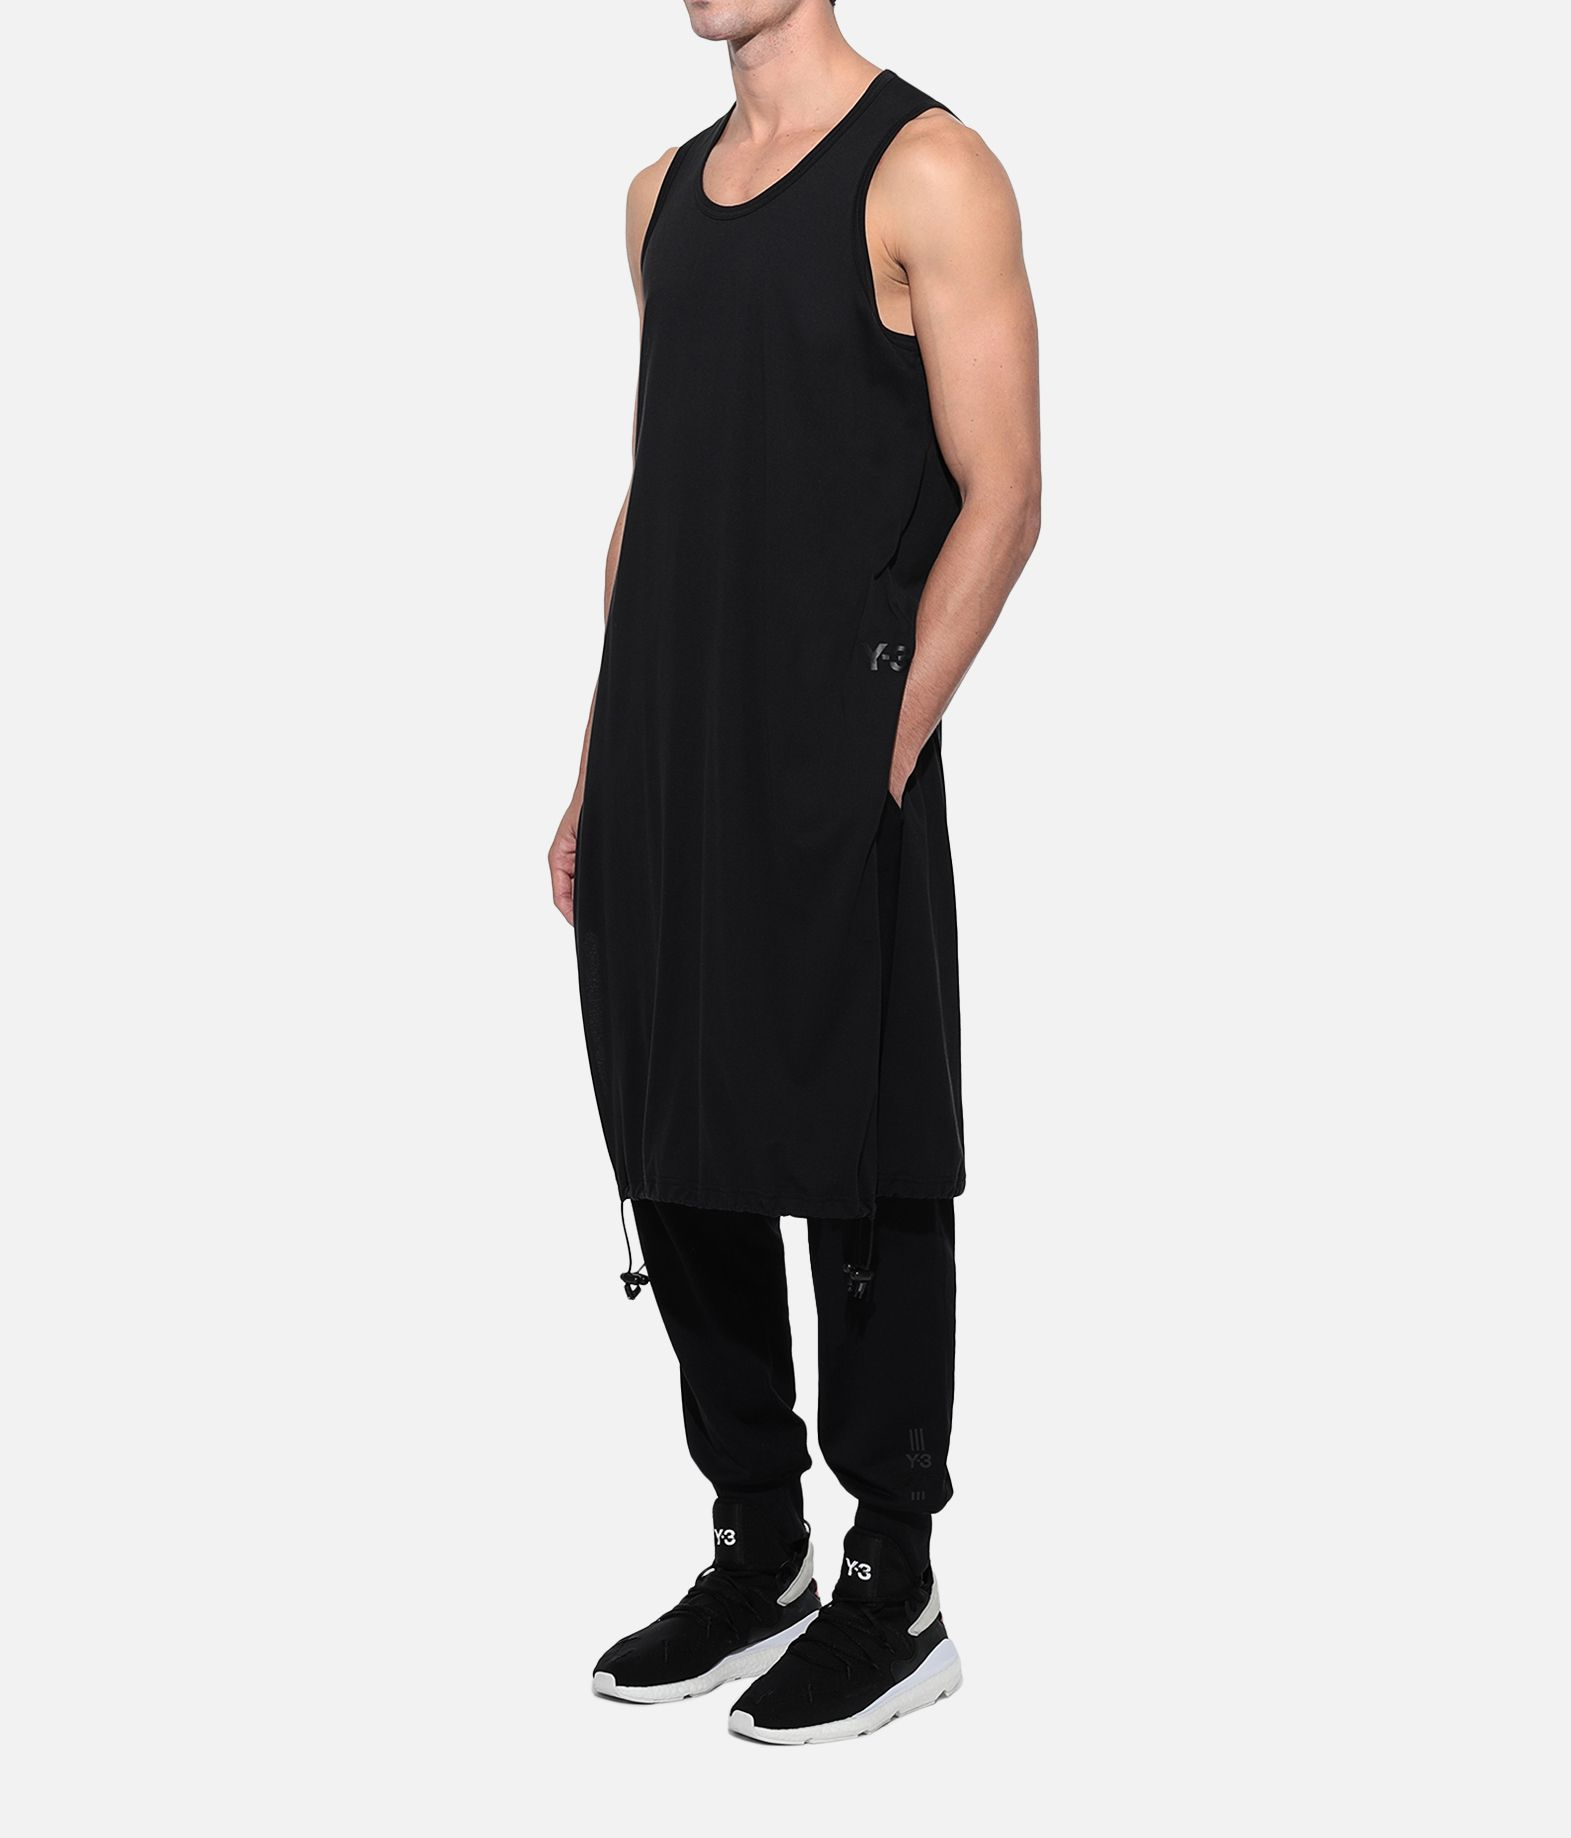 Y-3 Y-3 Drawstring Long Tank Top  Tank Man e